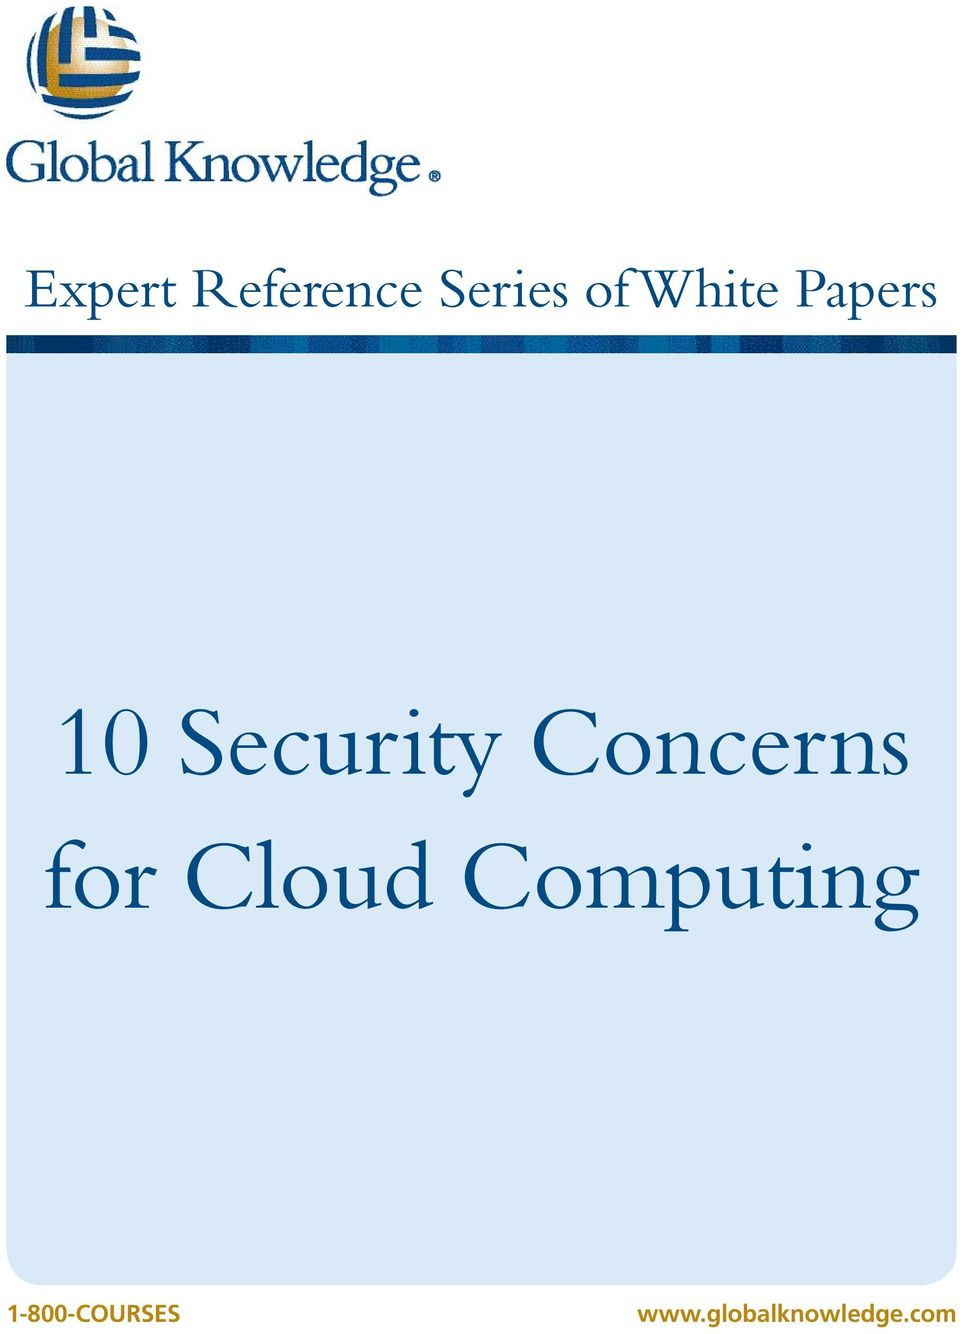 Concerns for Cloud Computing